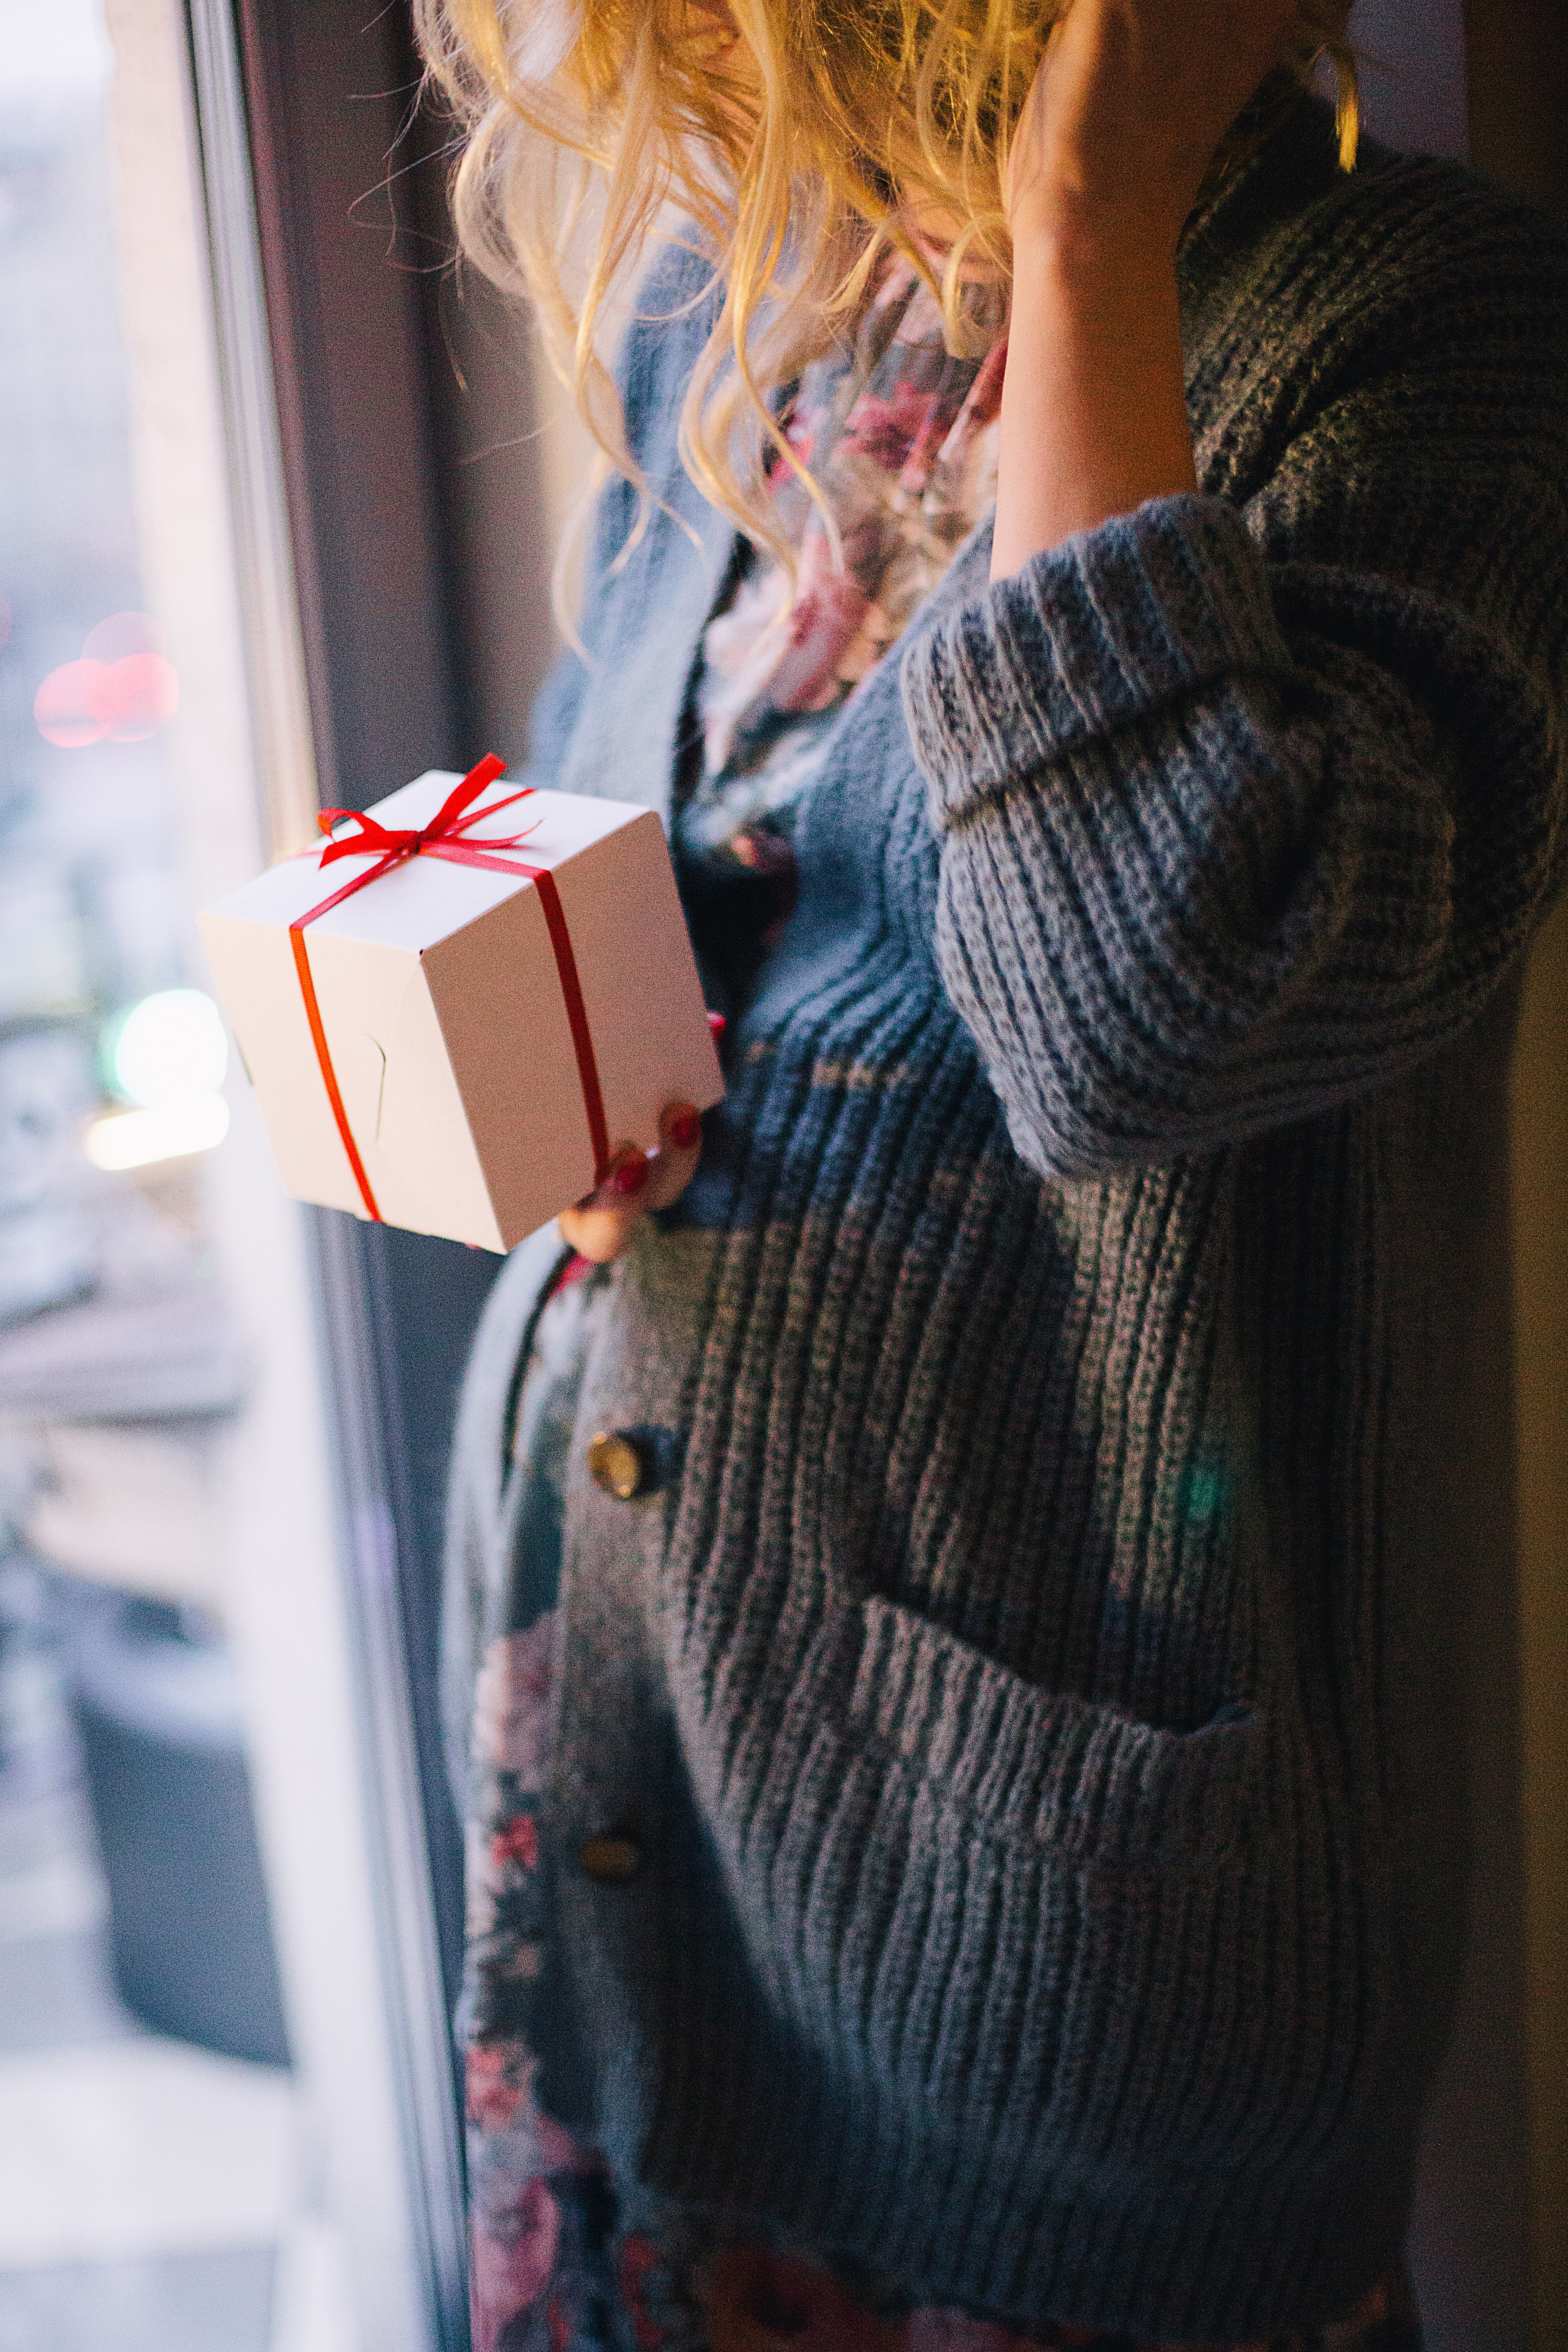 Woman wearing blue knit cardigan holding gift box inside room photo